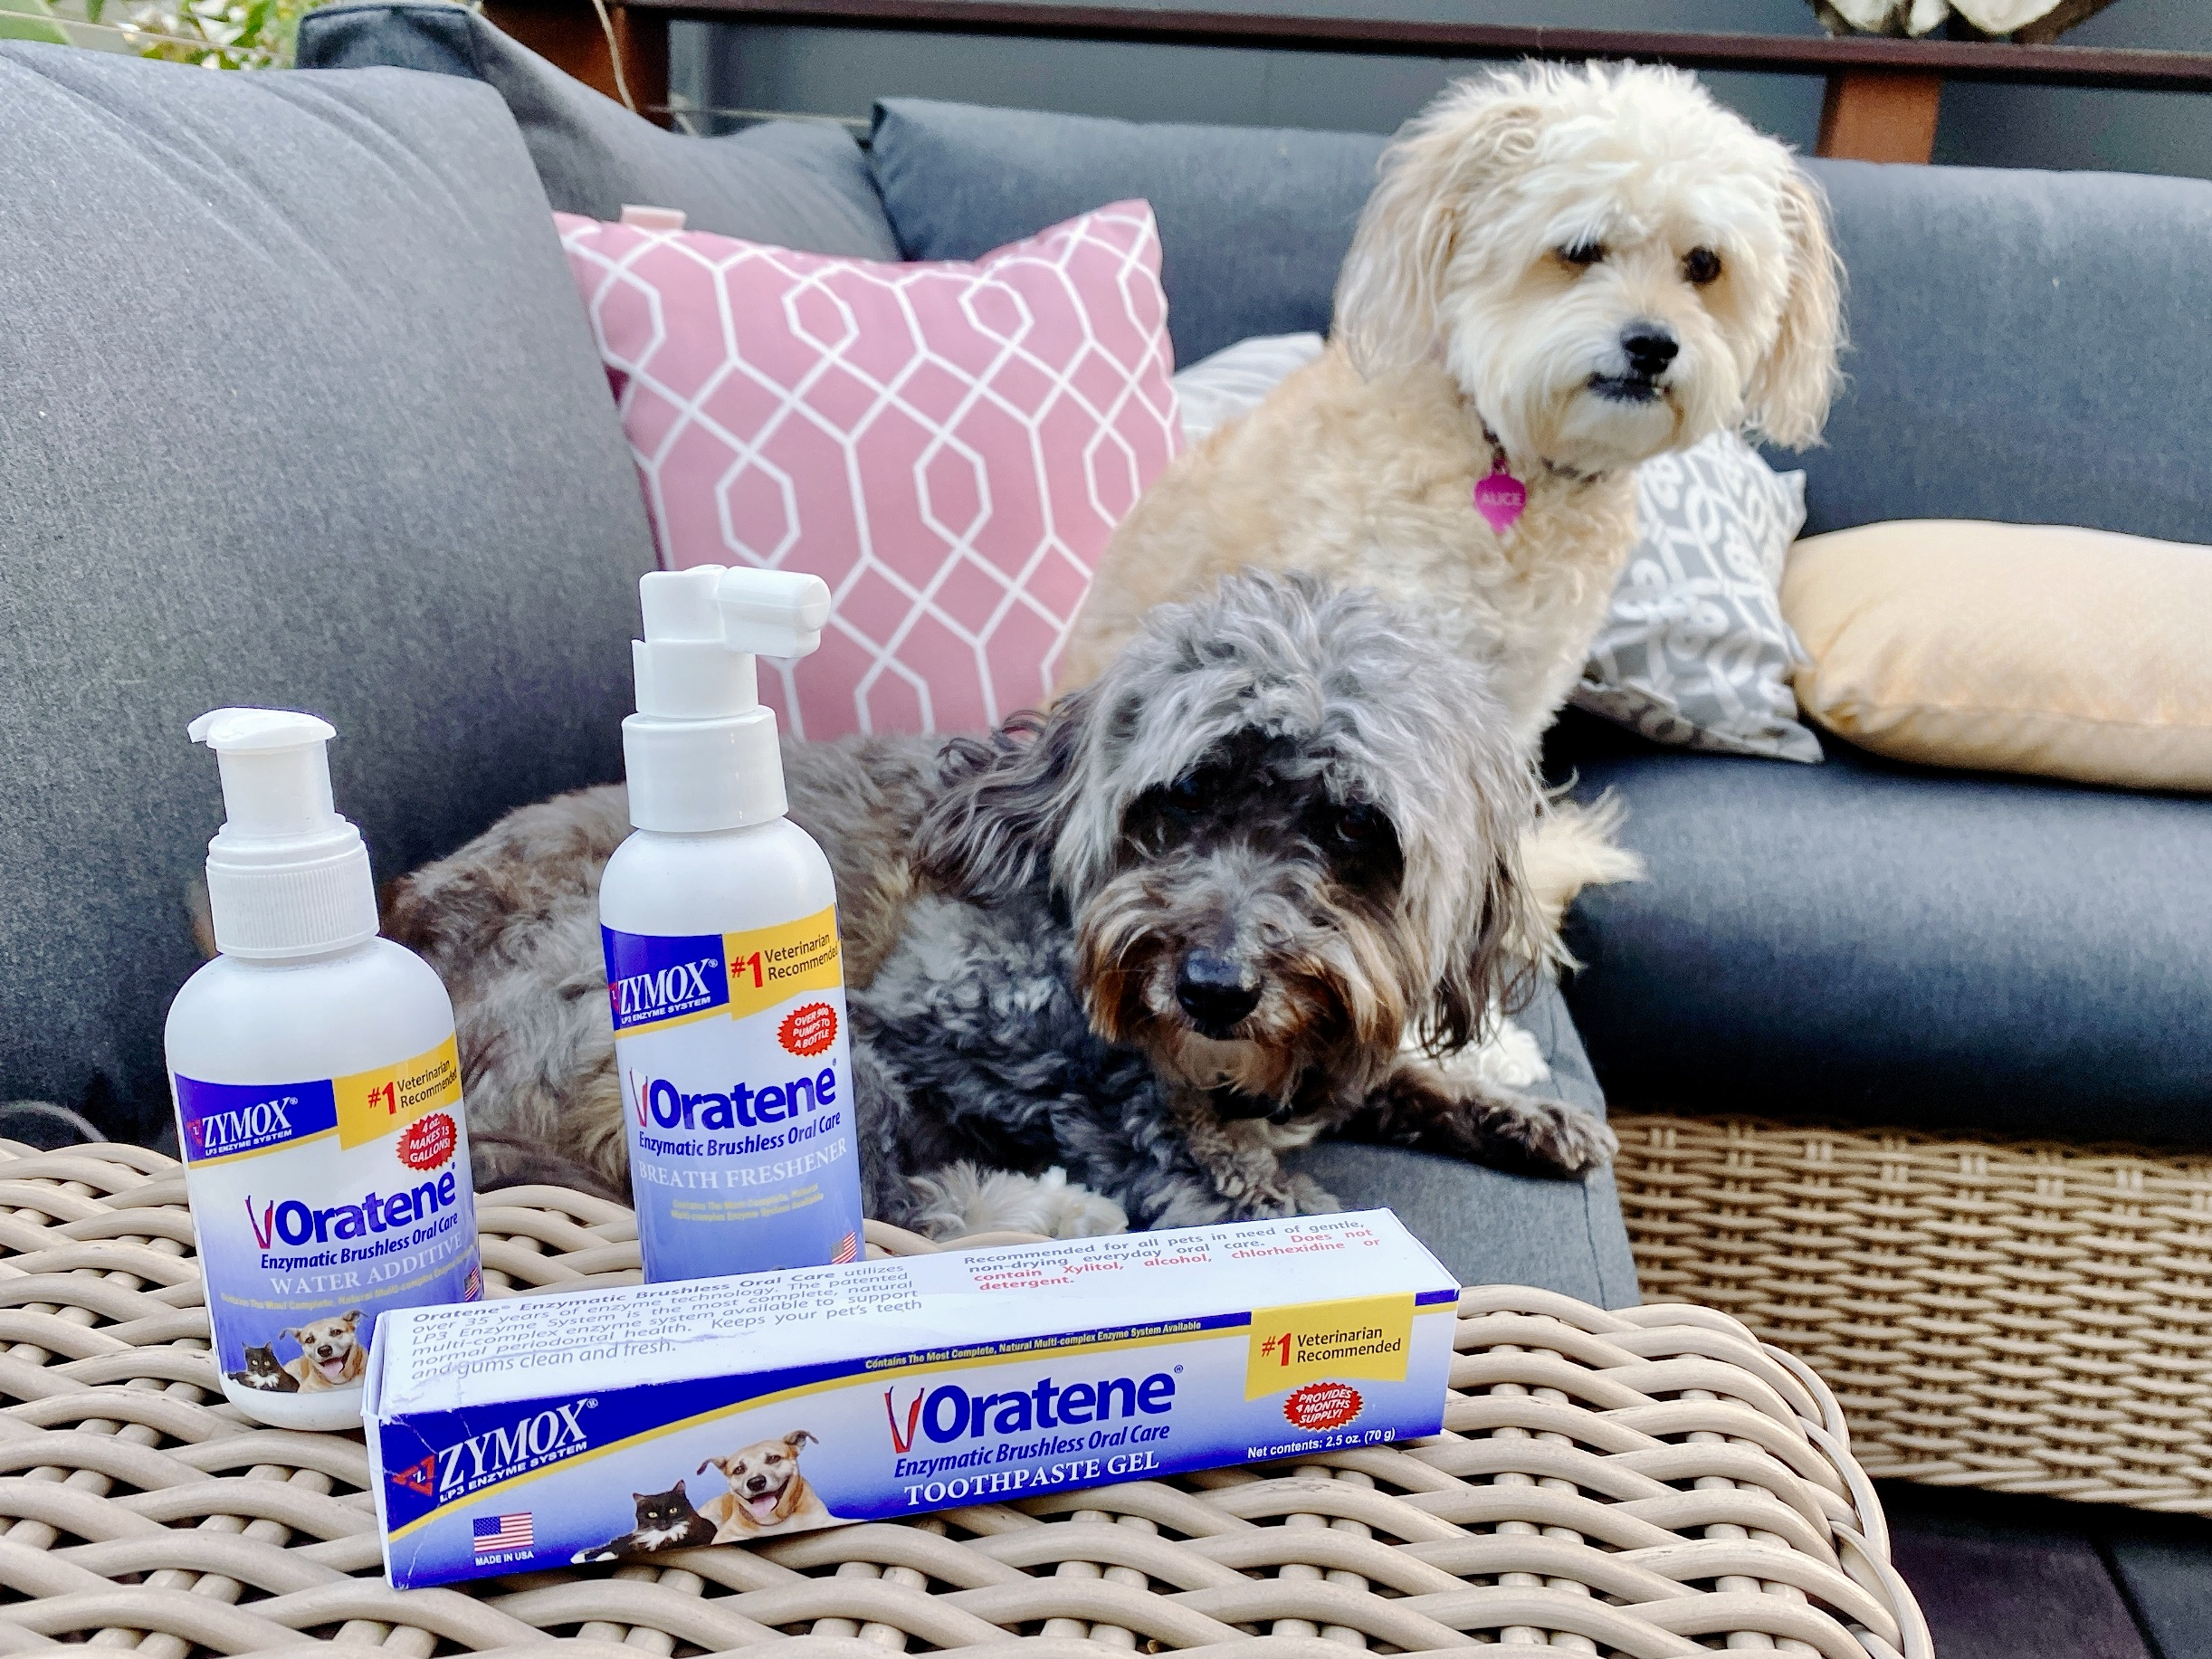 Two small fluffy dogs pose with Oratene dog dental care products